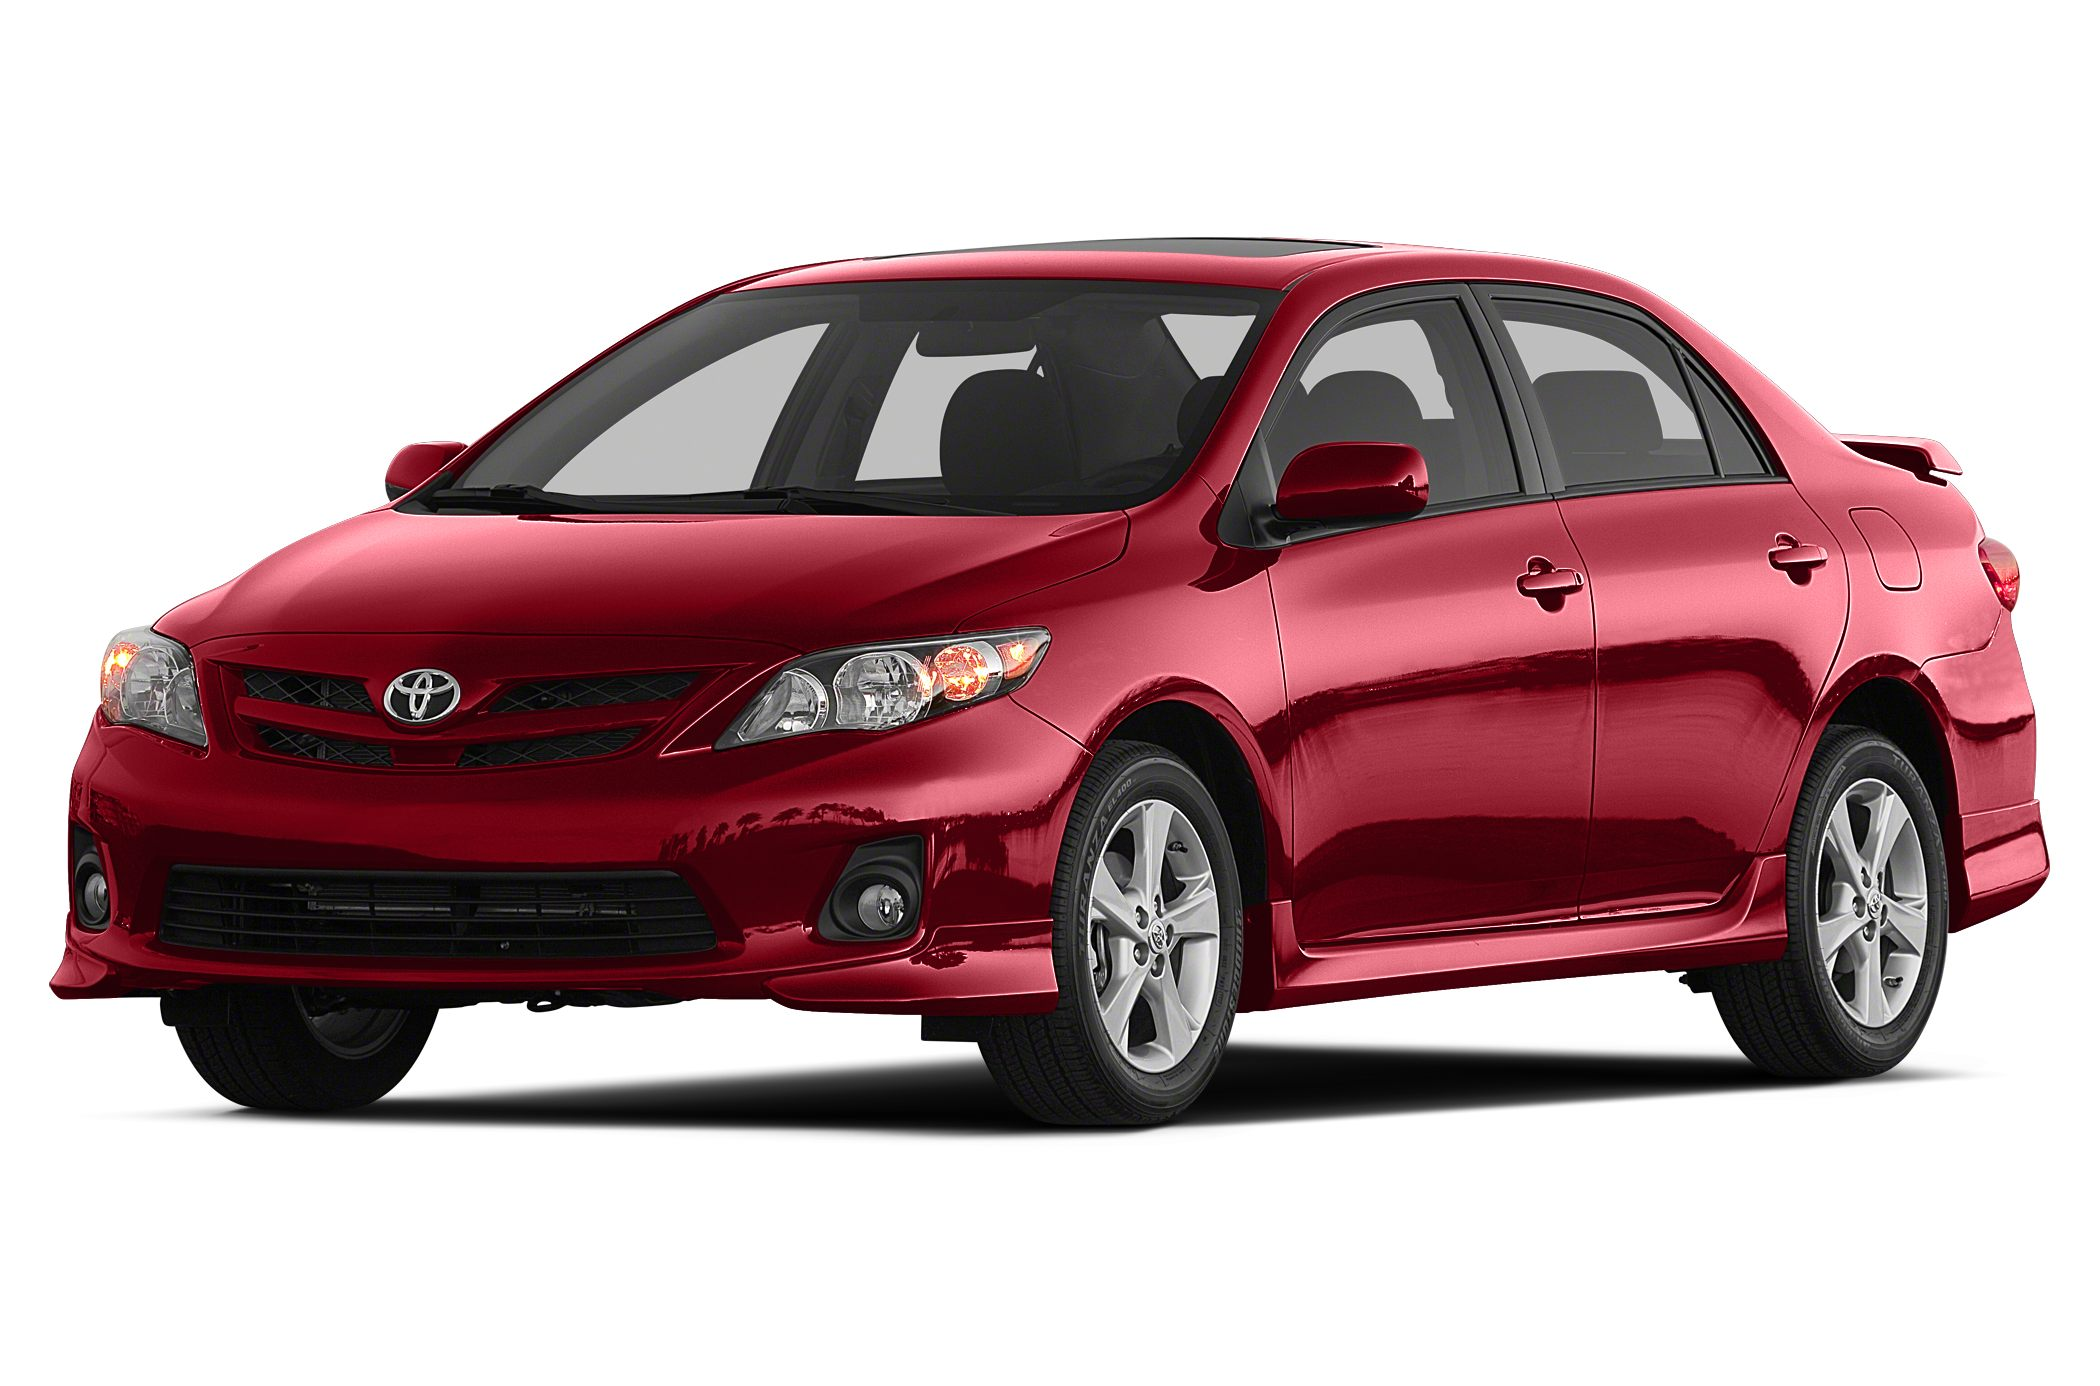 Toyota Corolla Owners Manual: Towing your vehicle with 4 wheels on the ground